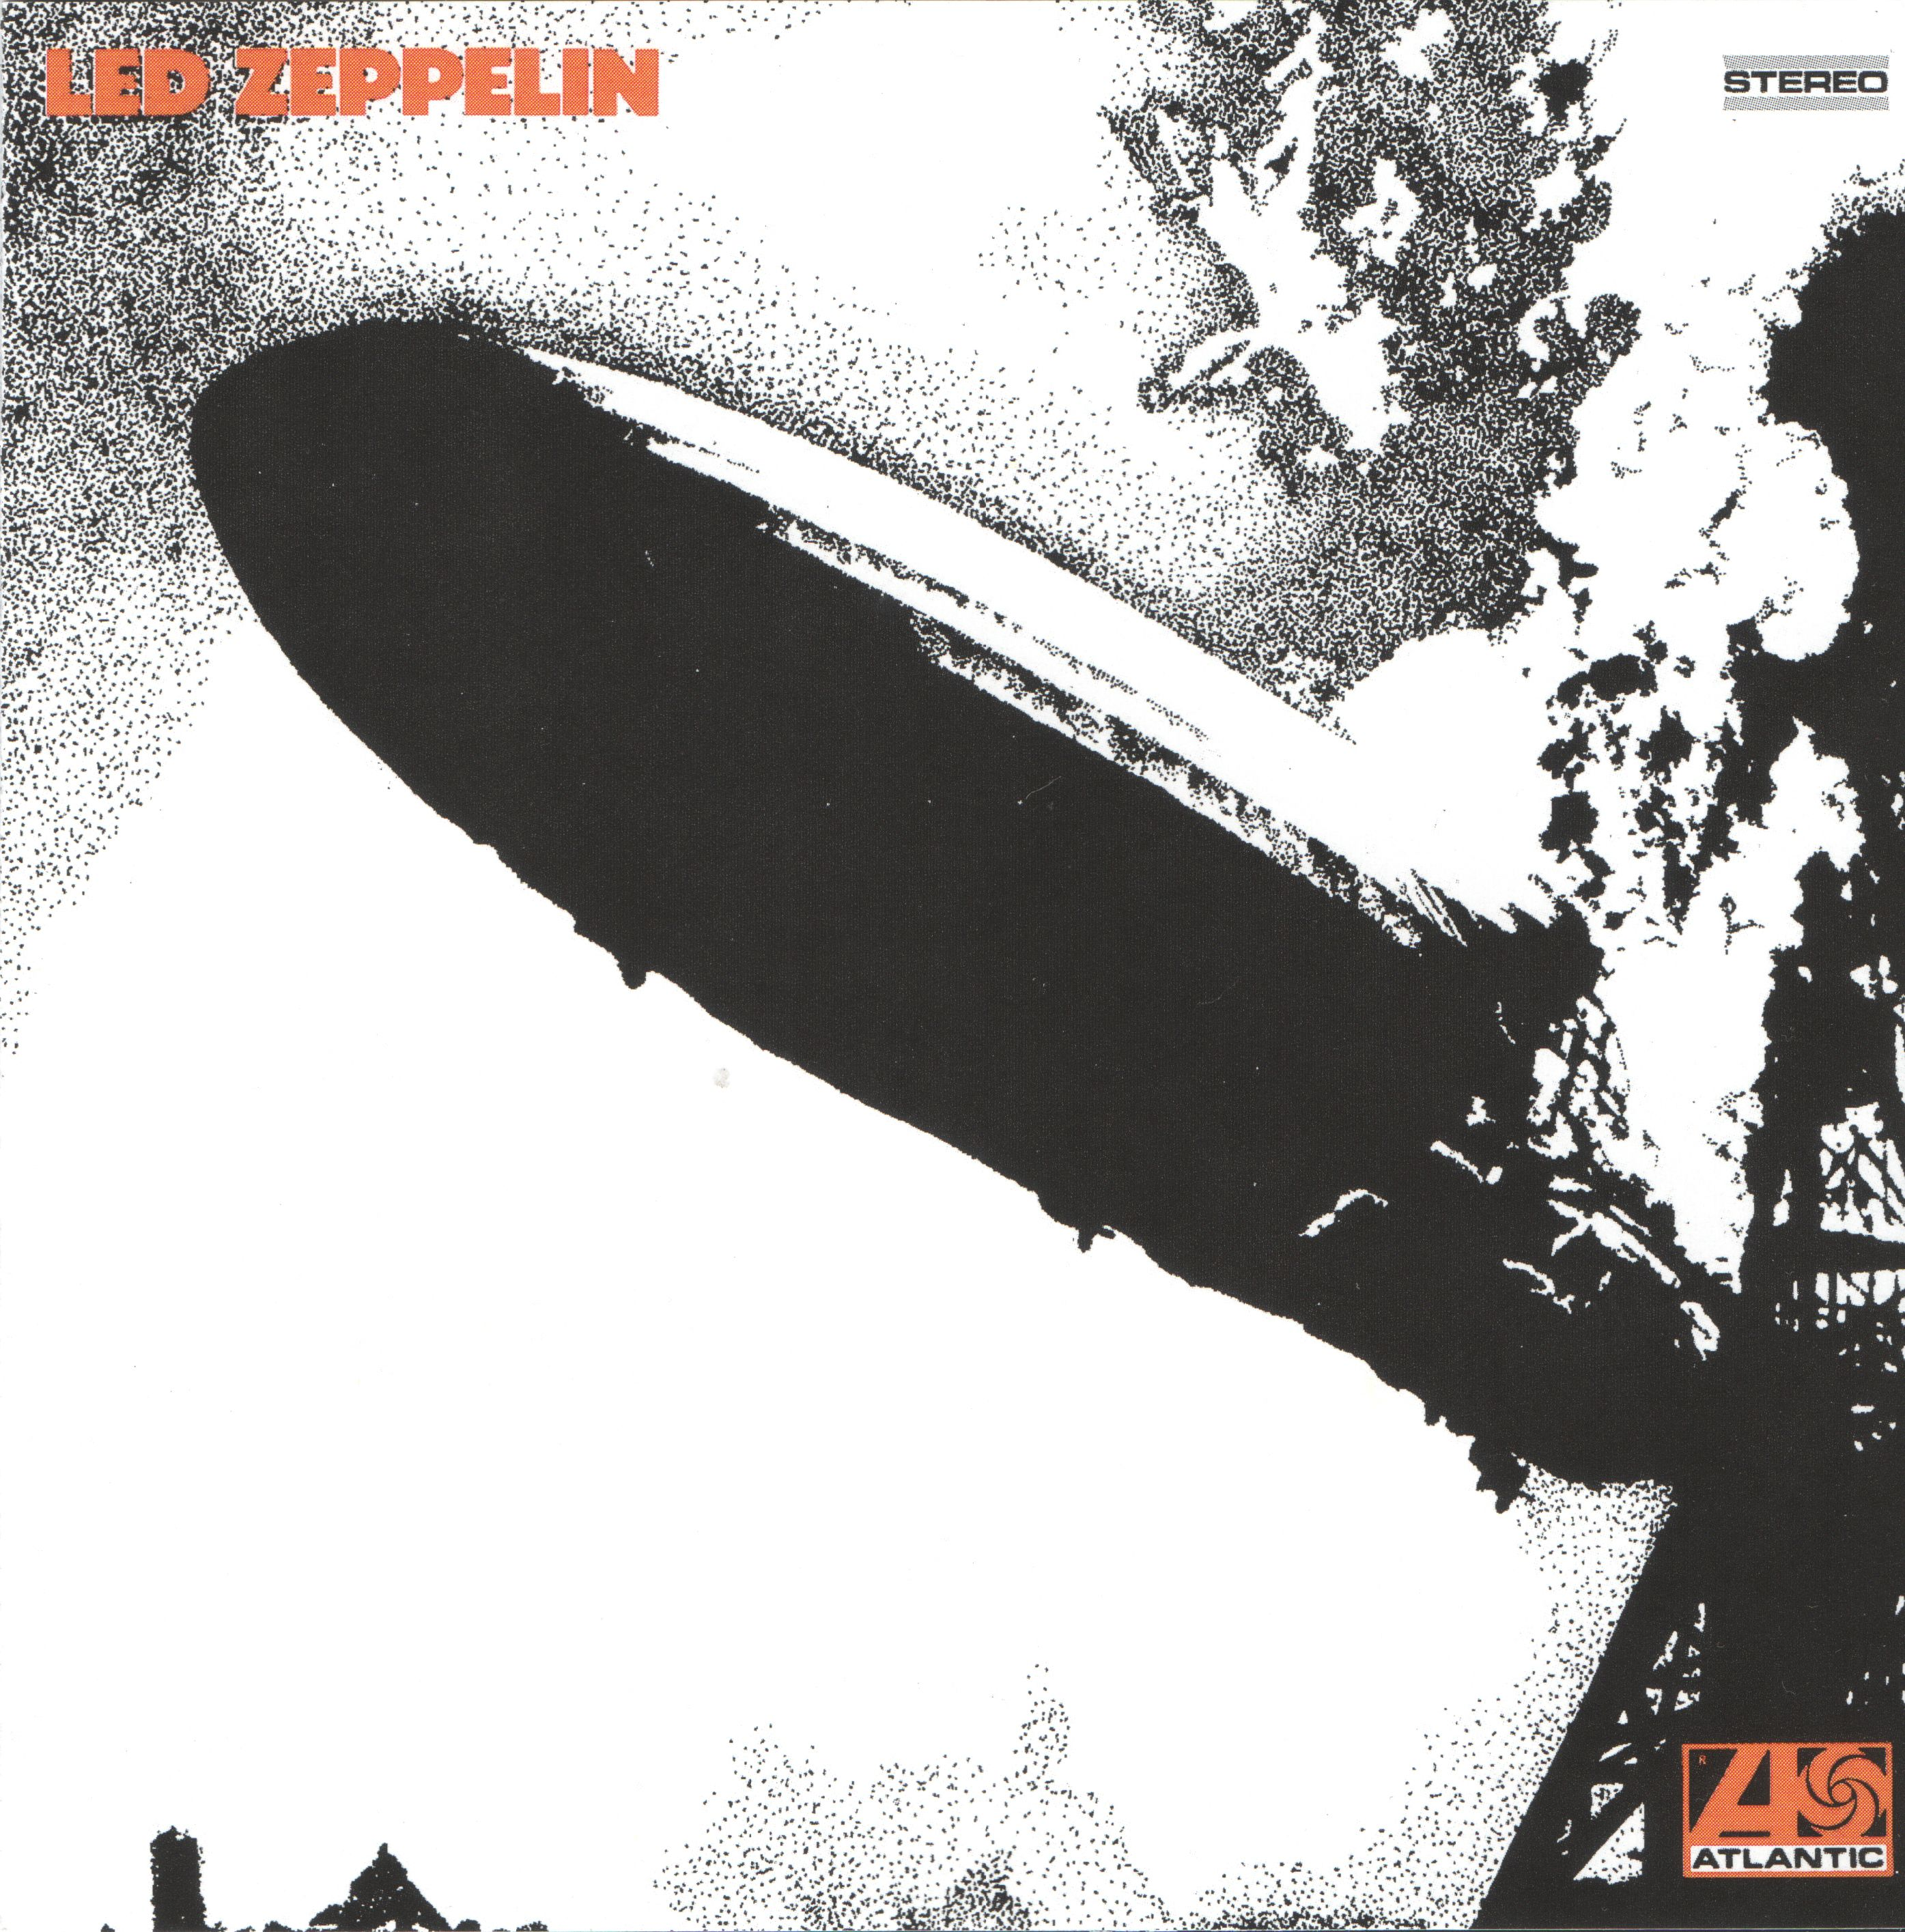 Led Zeppelin - Celebration Day album cover